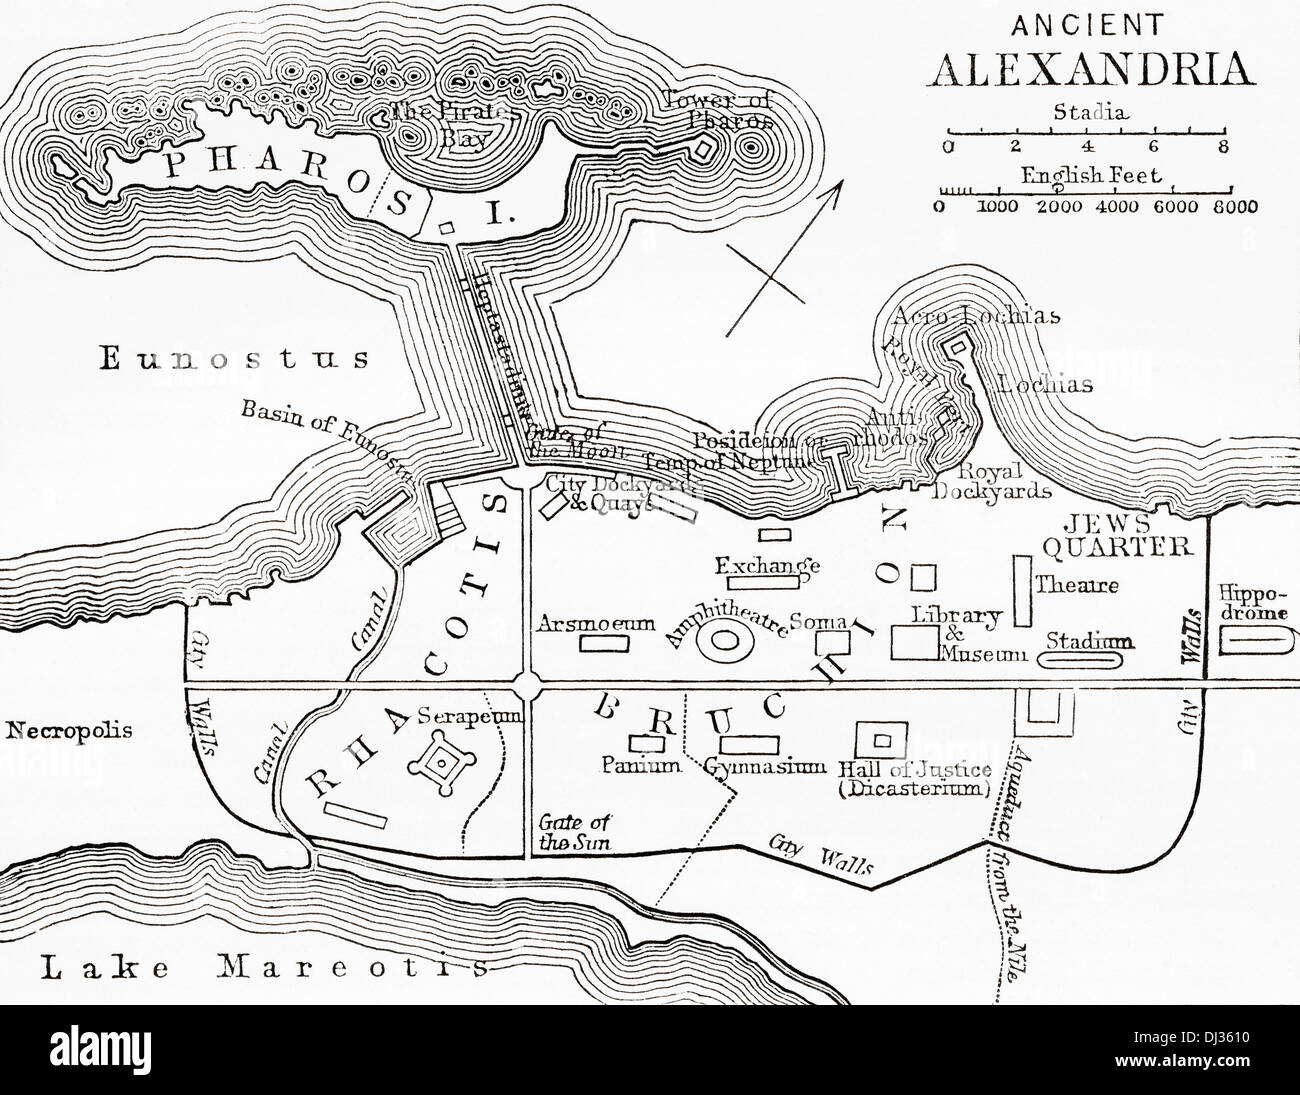 hight resolution of map of ancient alexandria egypt